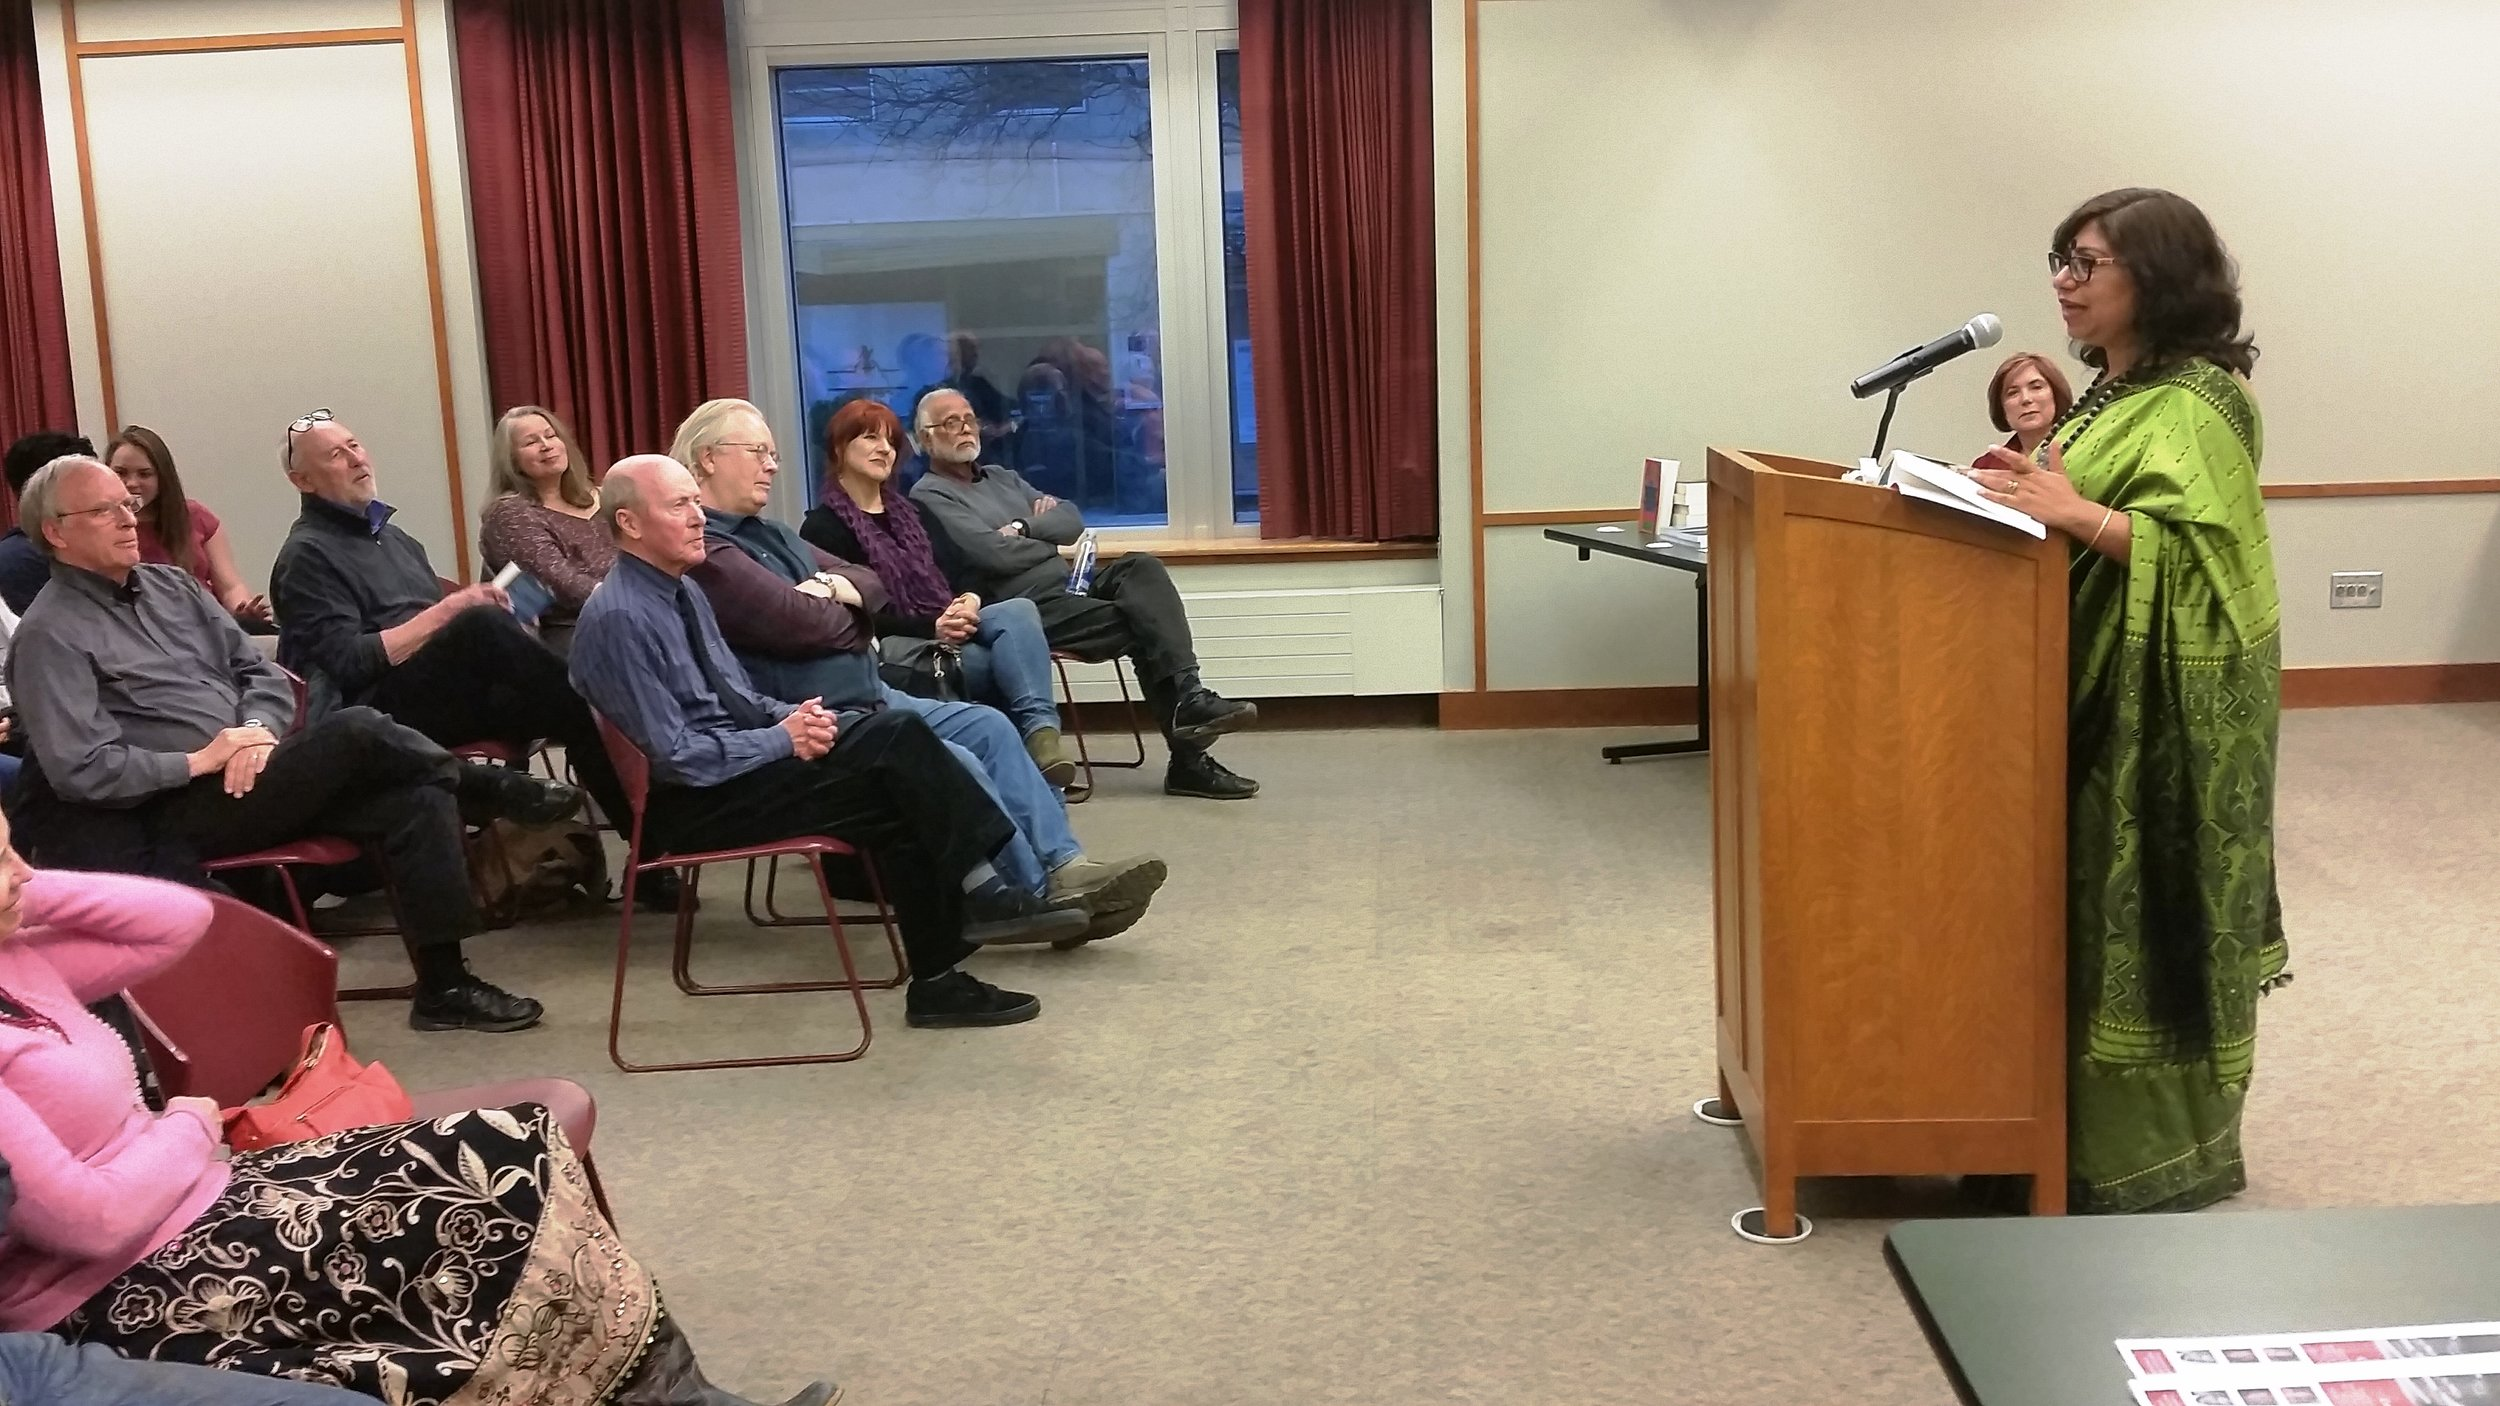 Dipika Mukherjee reads from the Chicago Quarterly Review at Evanston Public Library. (Photo by Russell Johnson.)